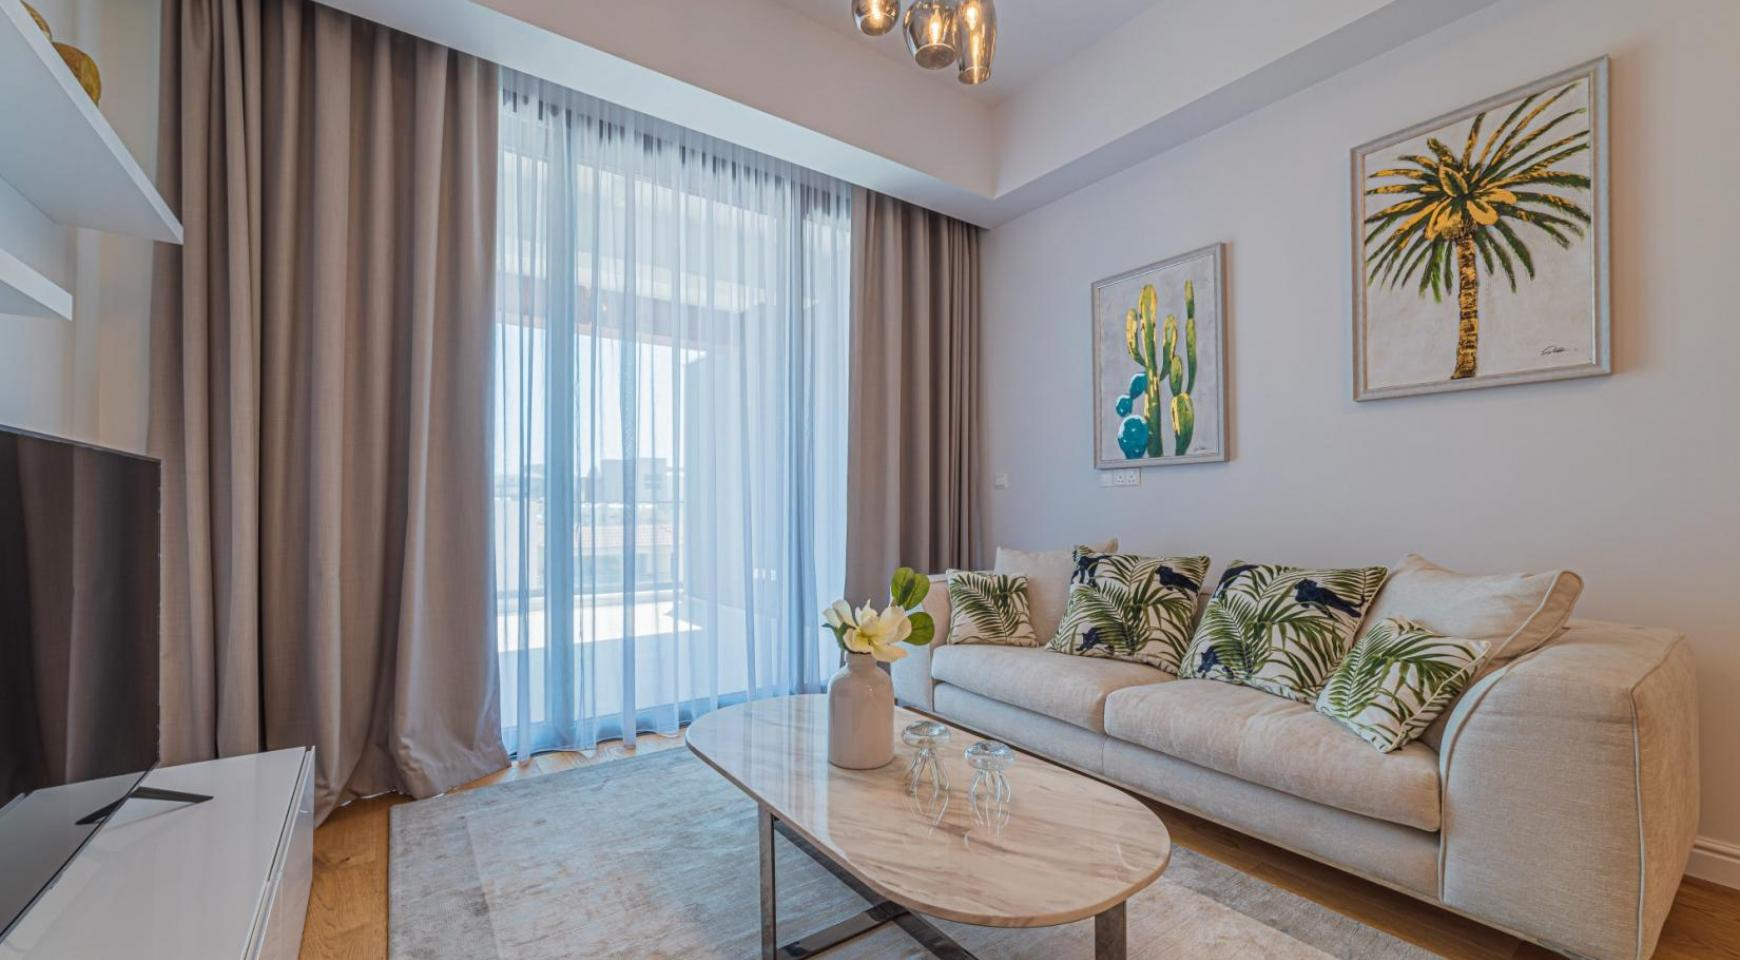 Hortensia Residence, Apt. 102. 2 Bedroom Apartment within a New Complex near the Sea  - 51